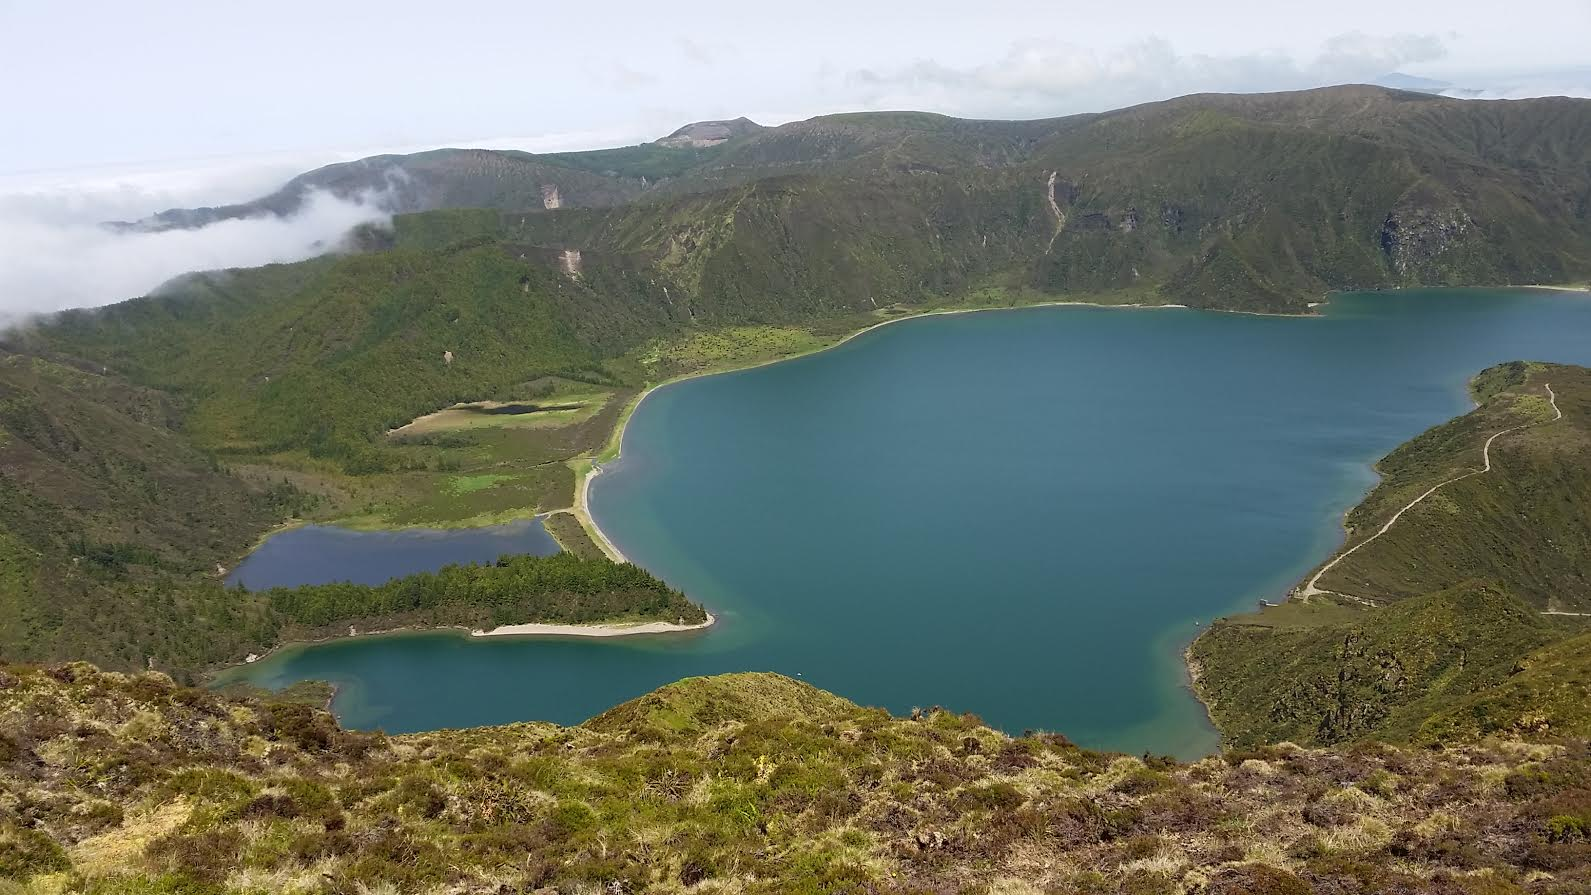 Fire Lake seen on the top of Pico da Barrosa (947 meters/3107 feet)